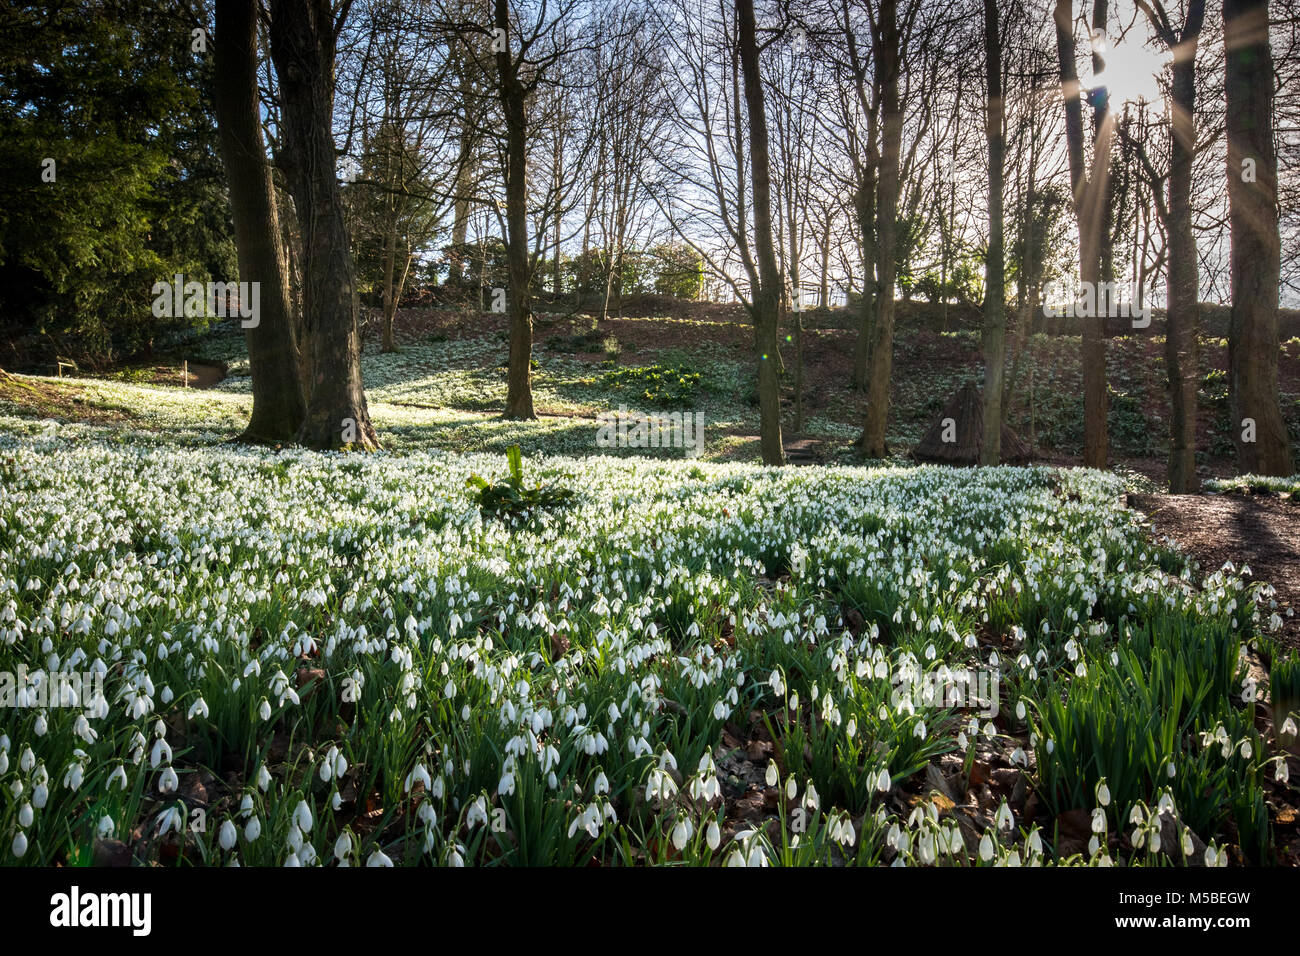 Carpets of Snowdrops, South West England. - Stock Image